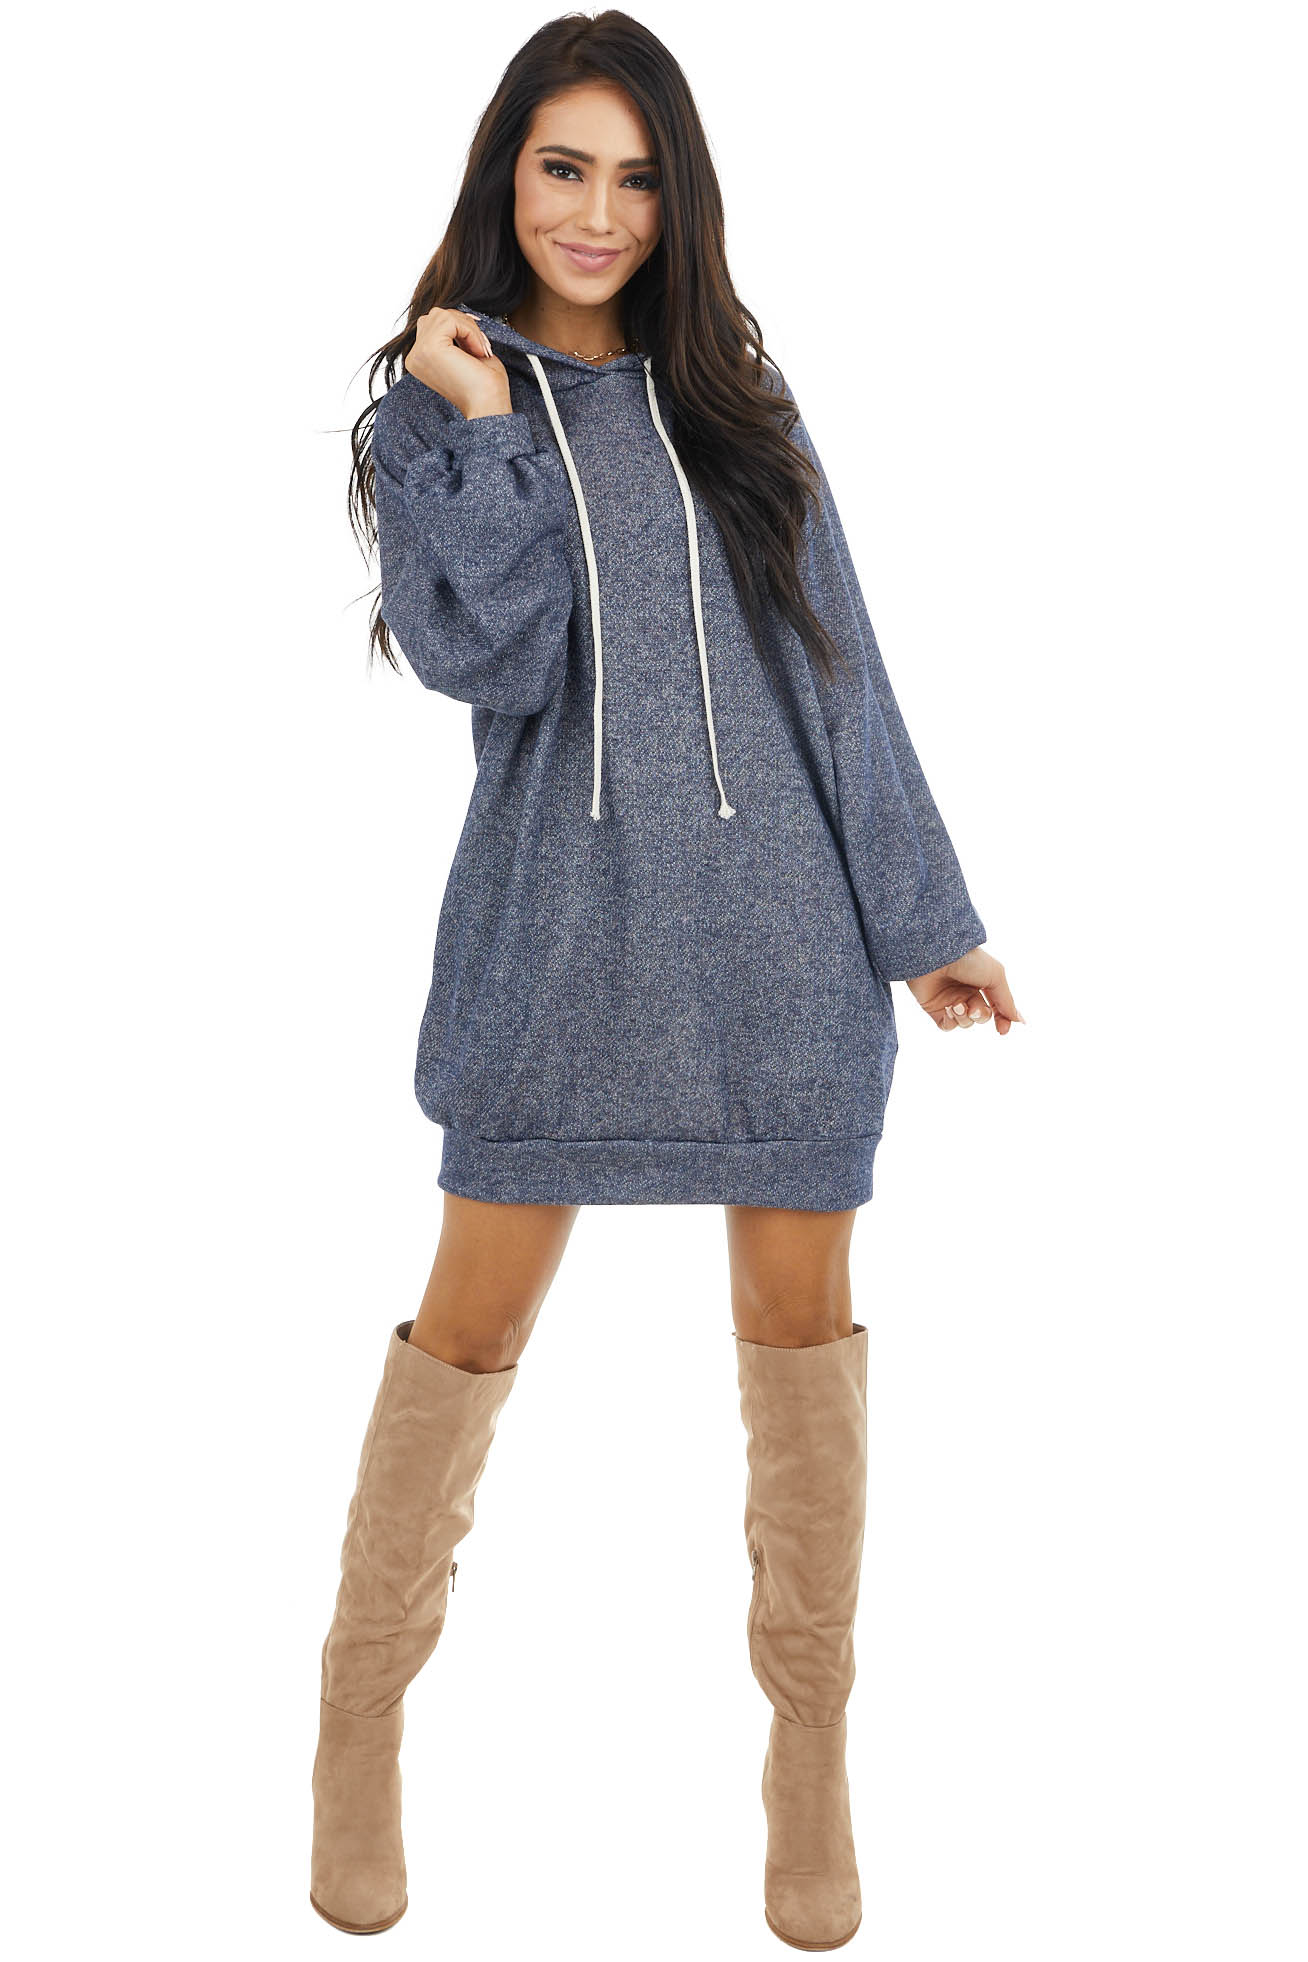 Navy Two Toned Hooded Dress with Long Bubble Sleeves